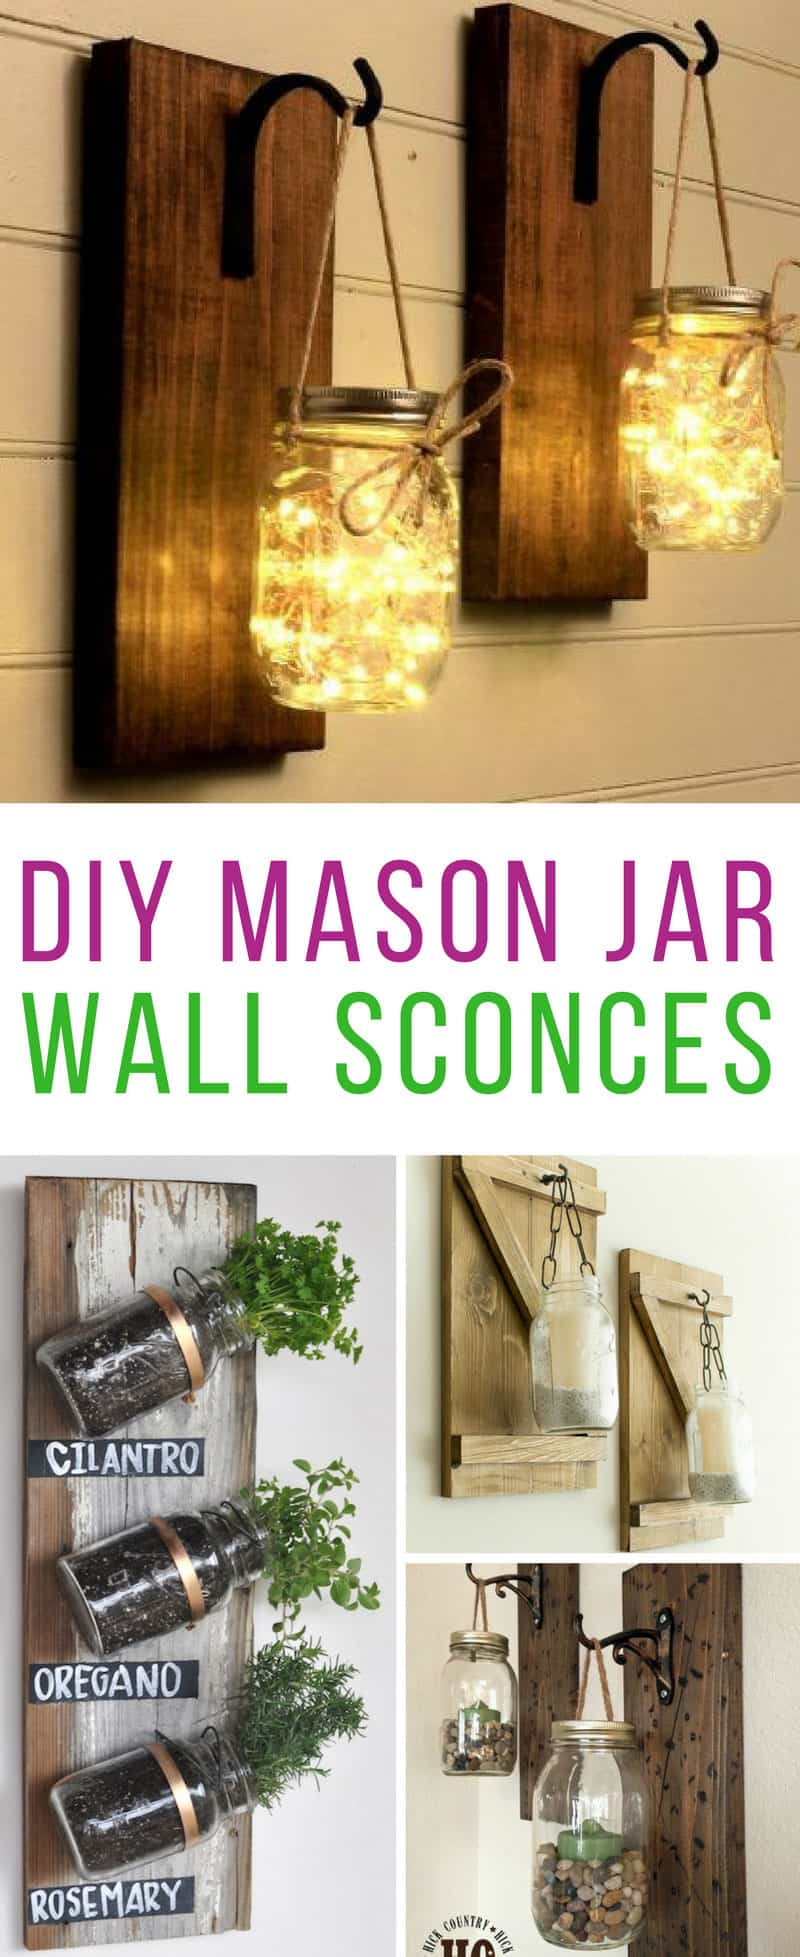 These DIY mason jar wall sconces are so easy to make! Thanks for sharing!